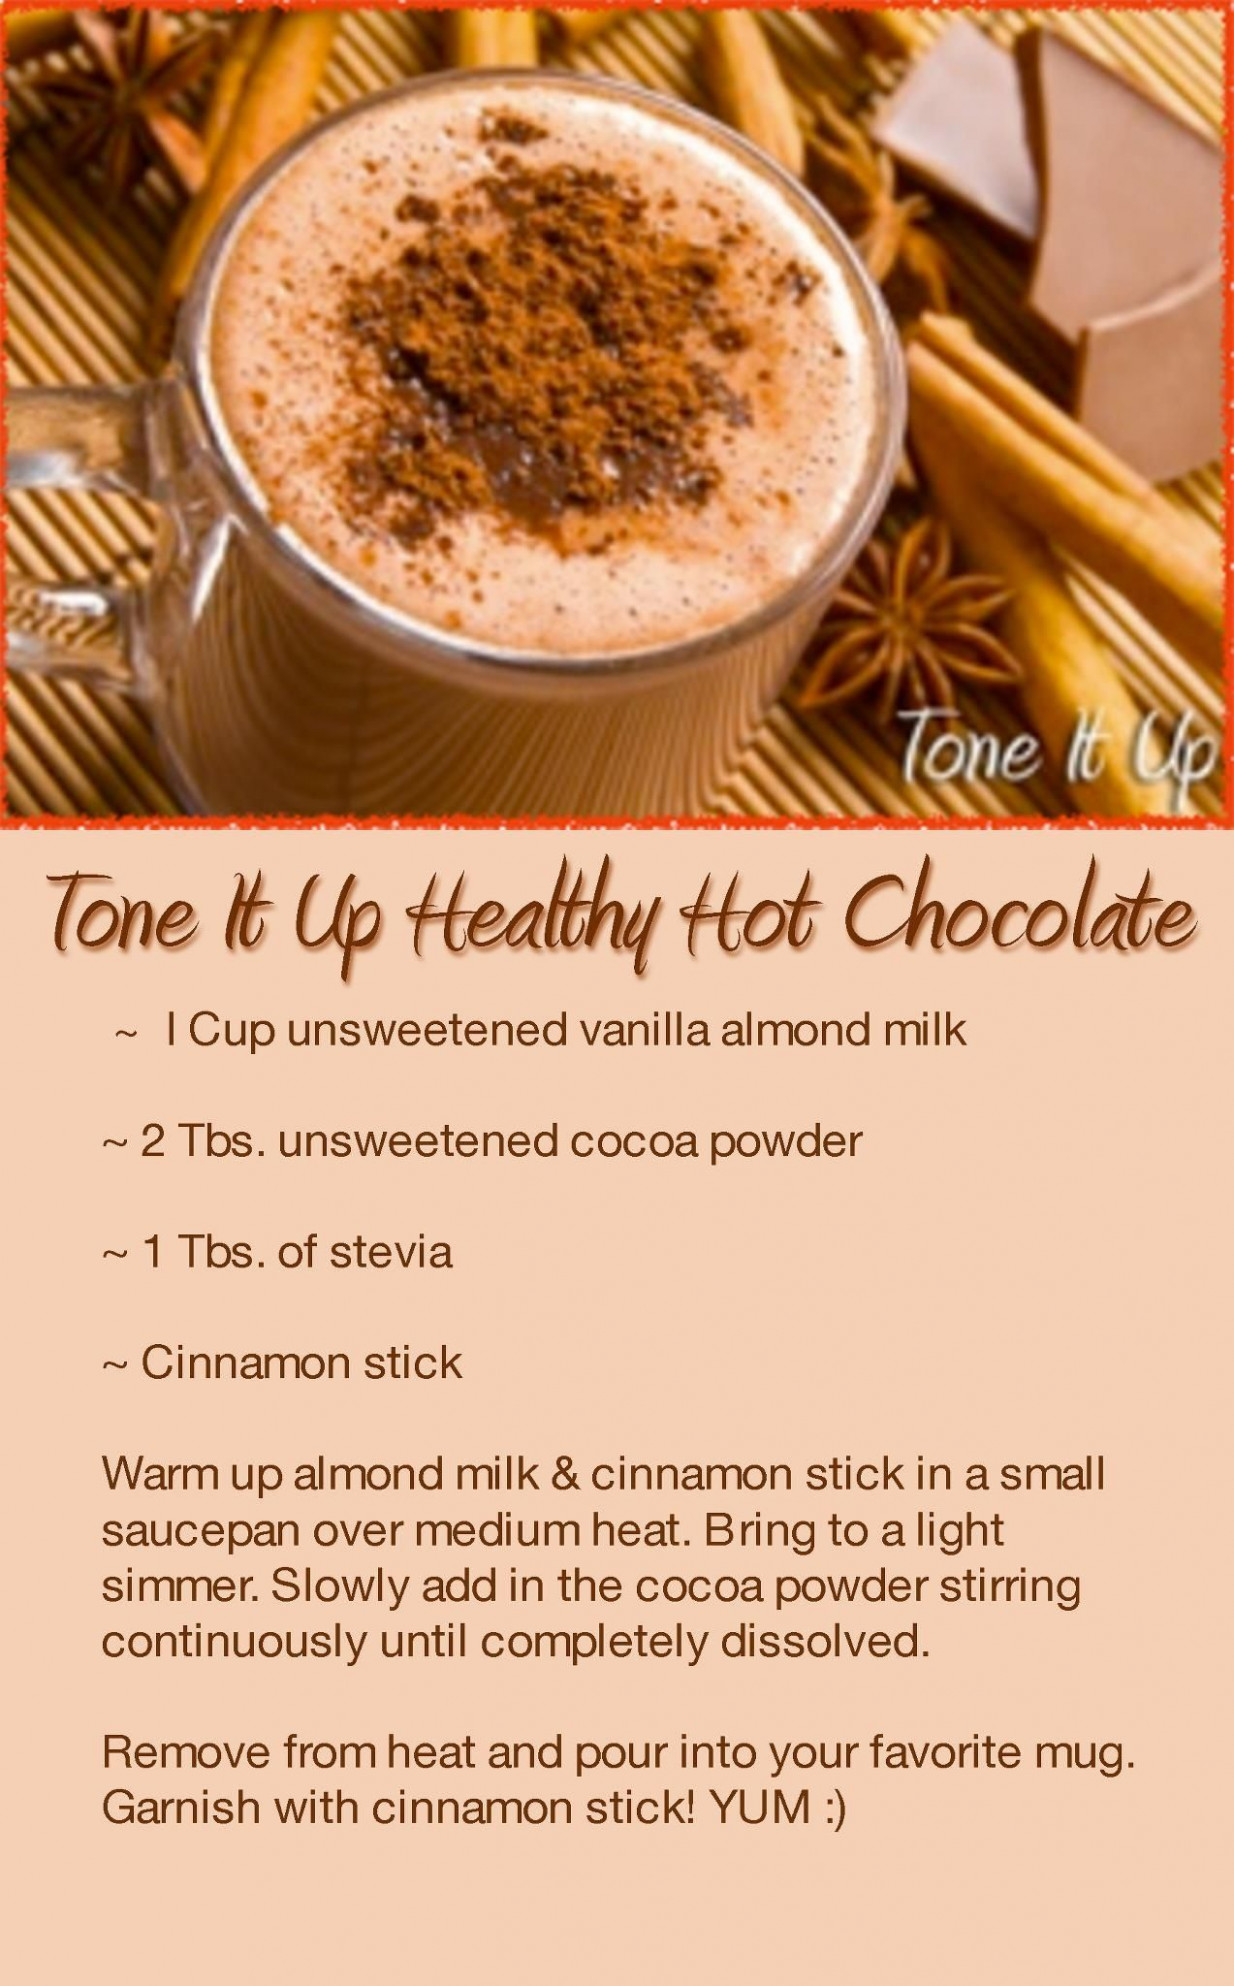 Tone it Up Healthy Hot Chocolate | Drinks and Smoothies in ...